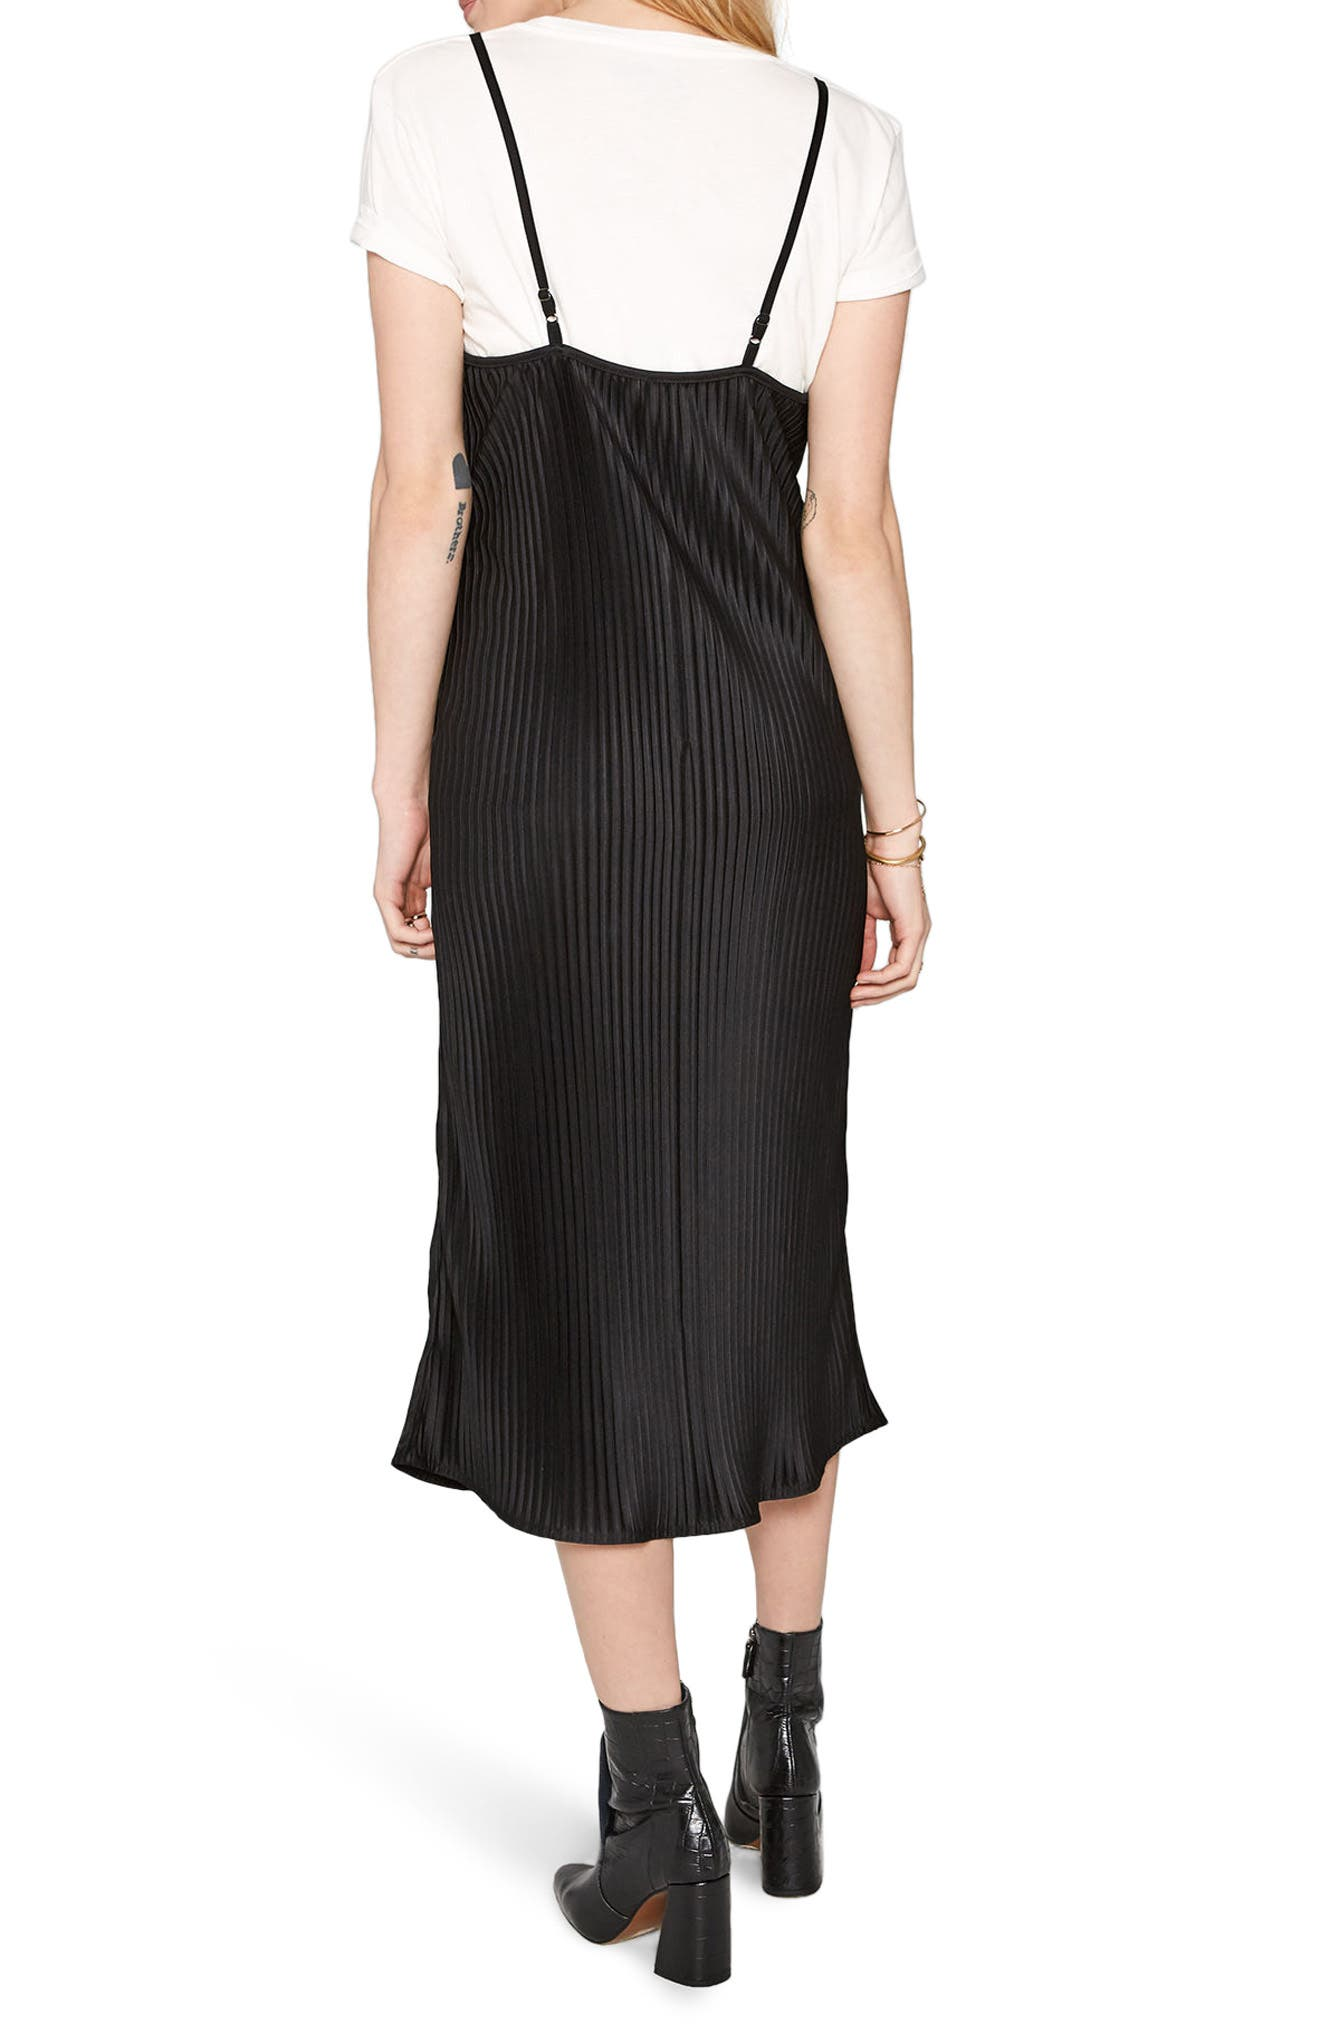 Sweet Surrender Slipdress,                             Alternate thumbnail 2, color,                             Black